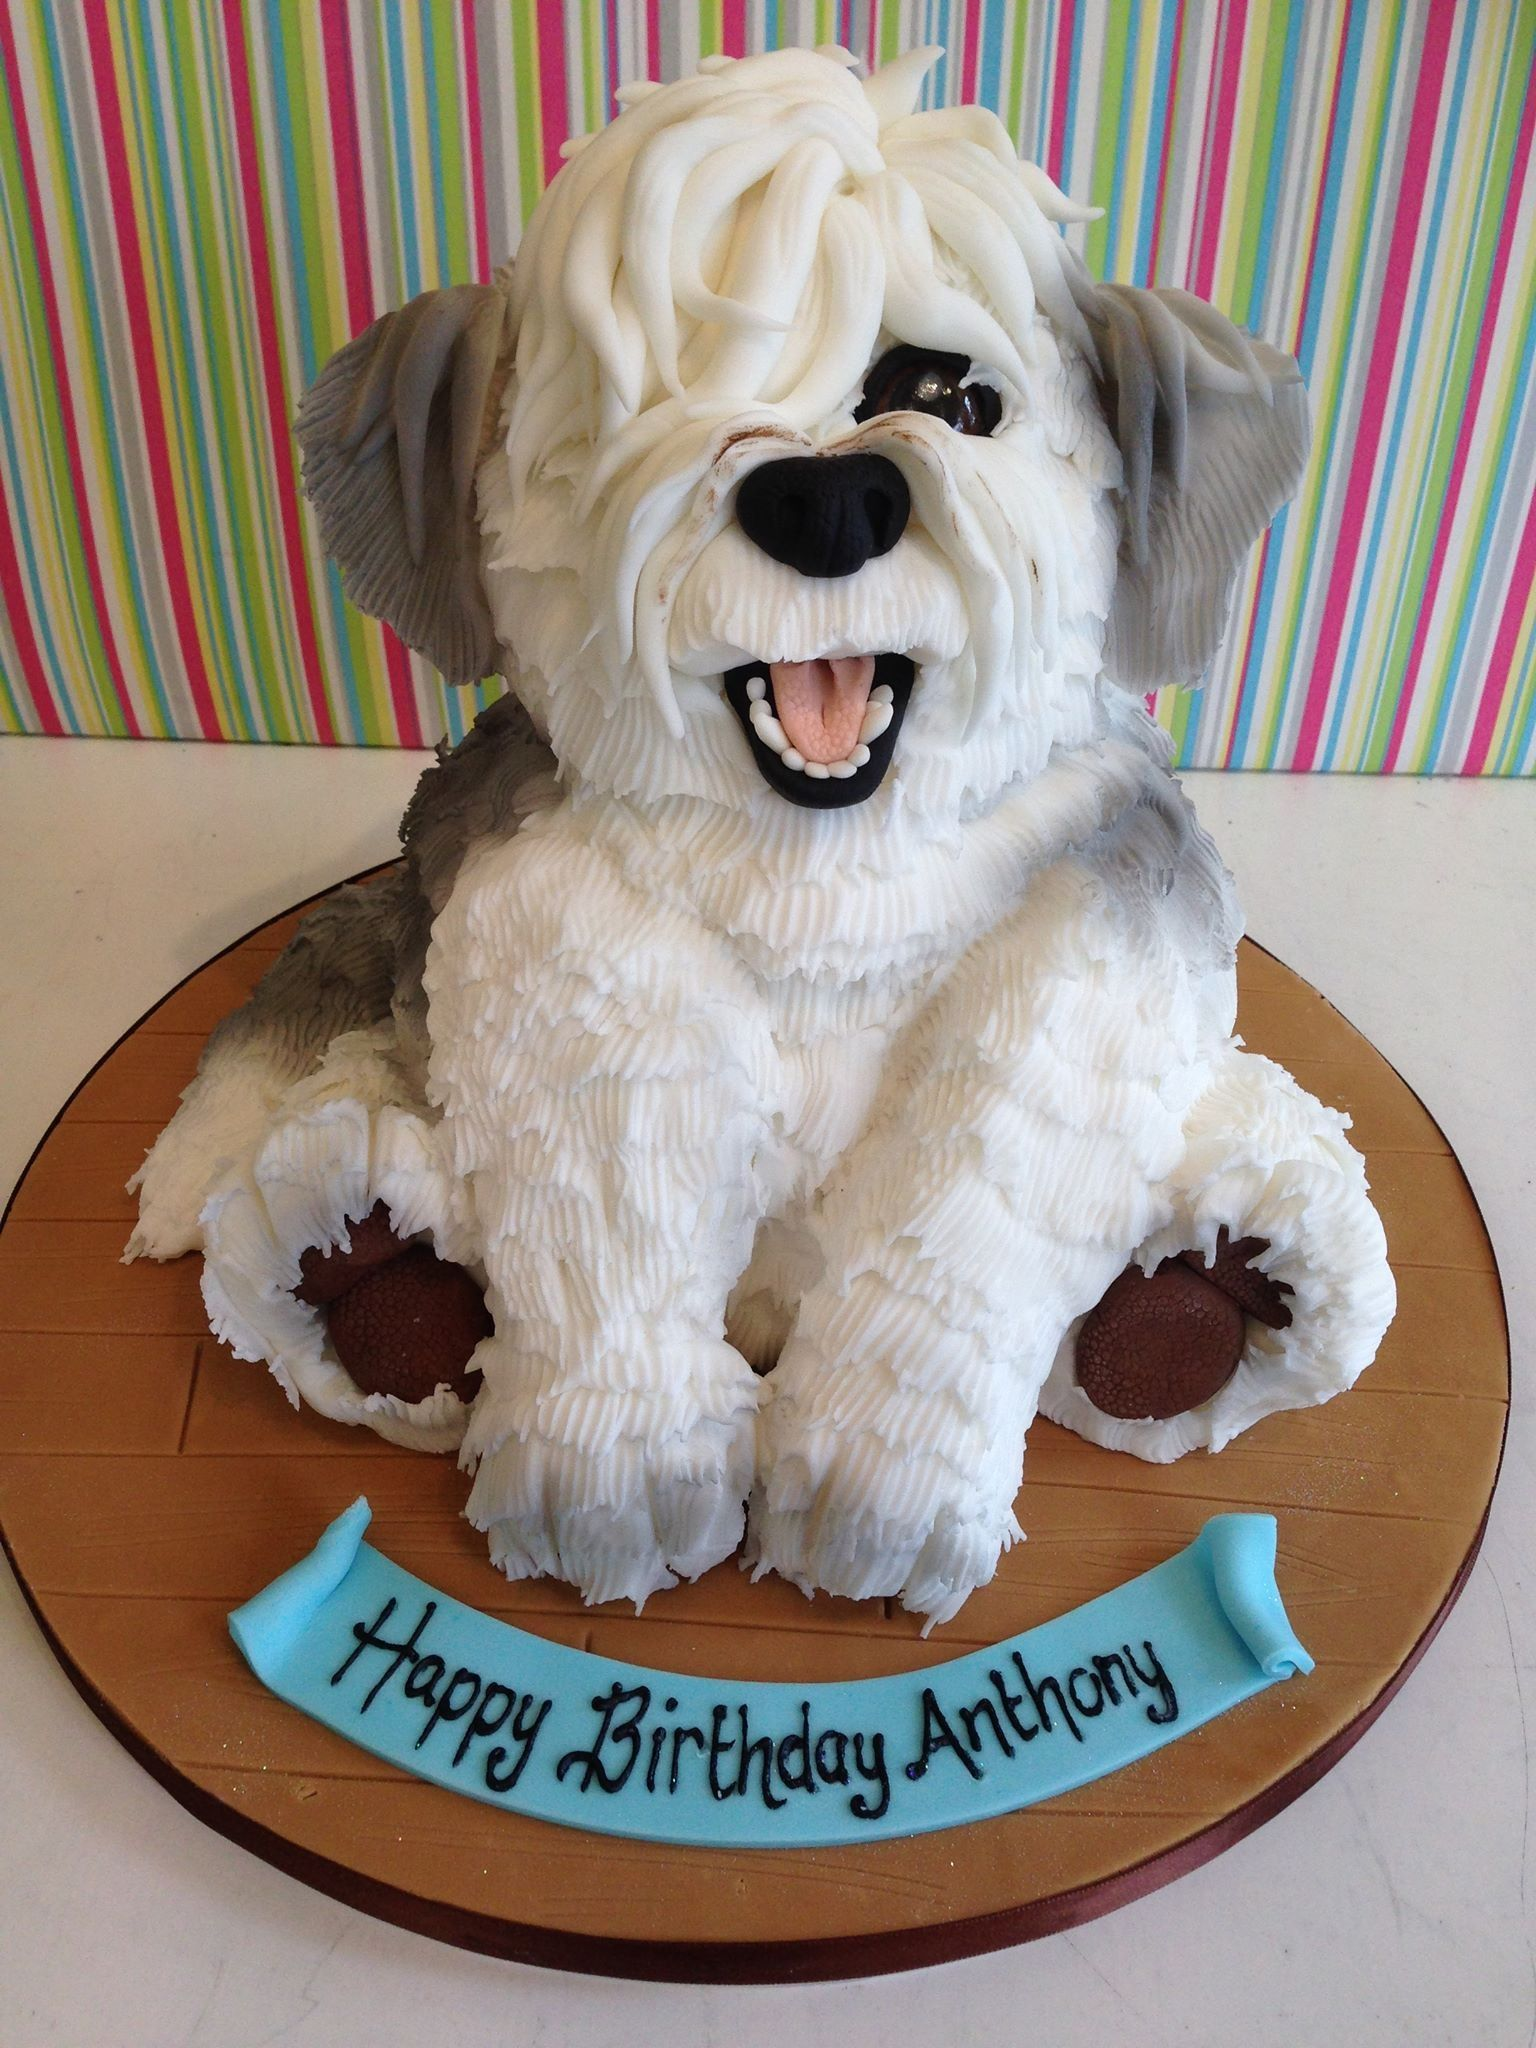 Amazing Cake Shaped Like A Happy Dog Enjoy RUSHWORLD Boards I CANT BELIEVE ITS CAKE WEDDING CAKES WE DO And UNPREDICTABLE WOMEN HAUTE COUTURE